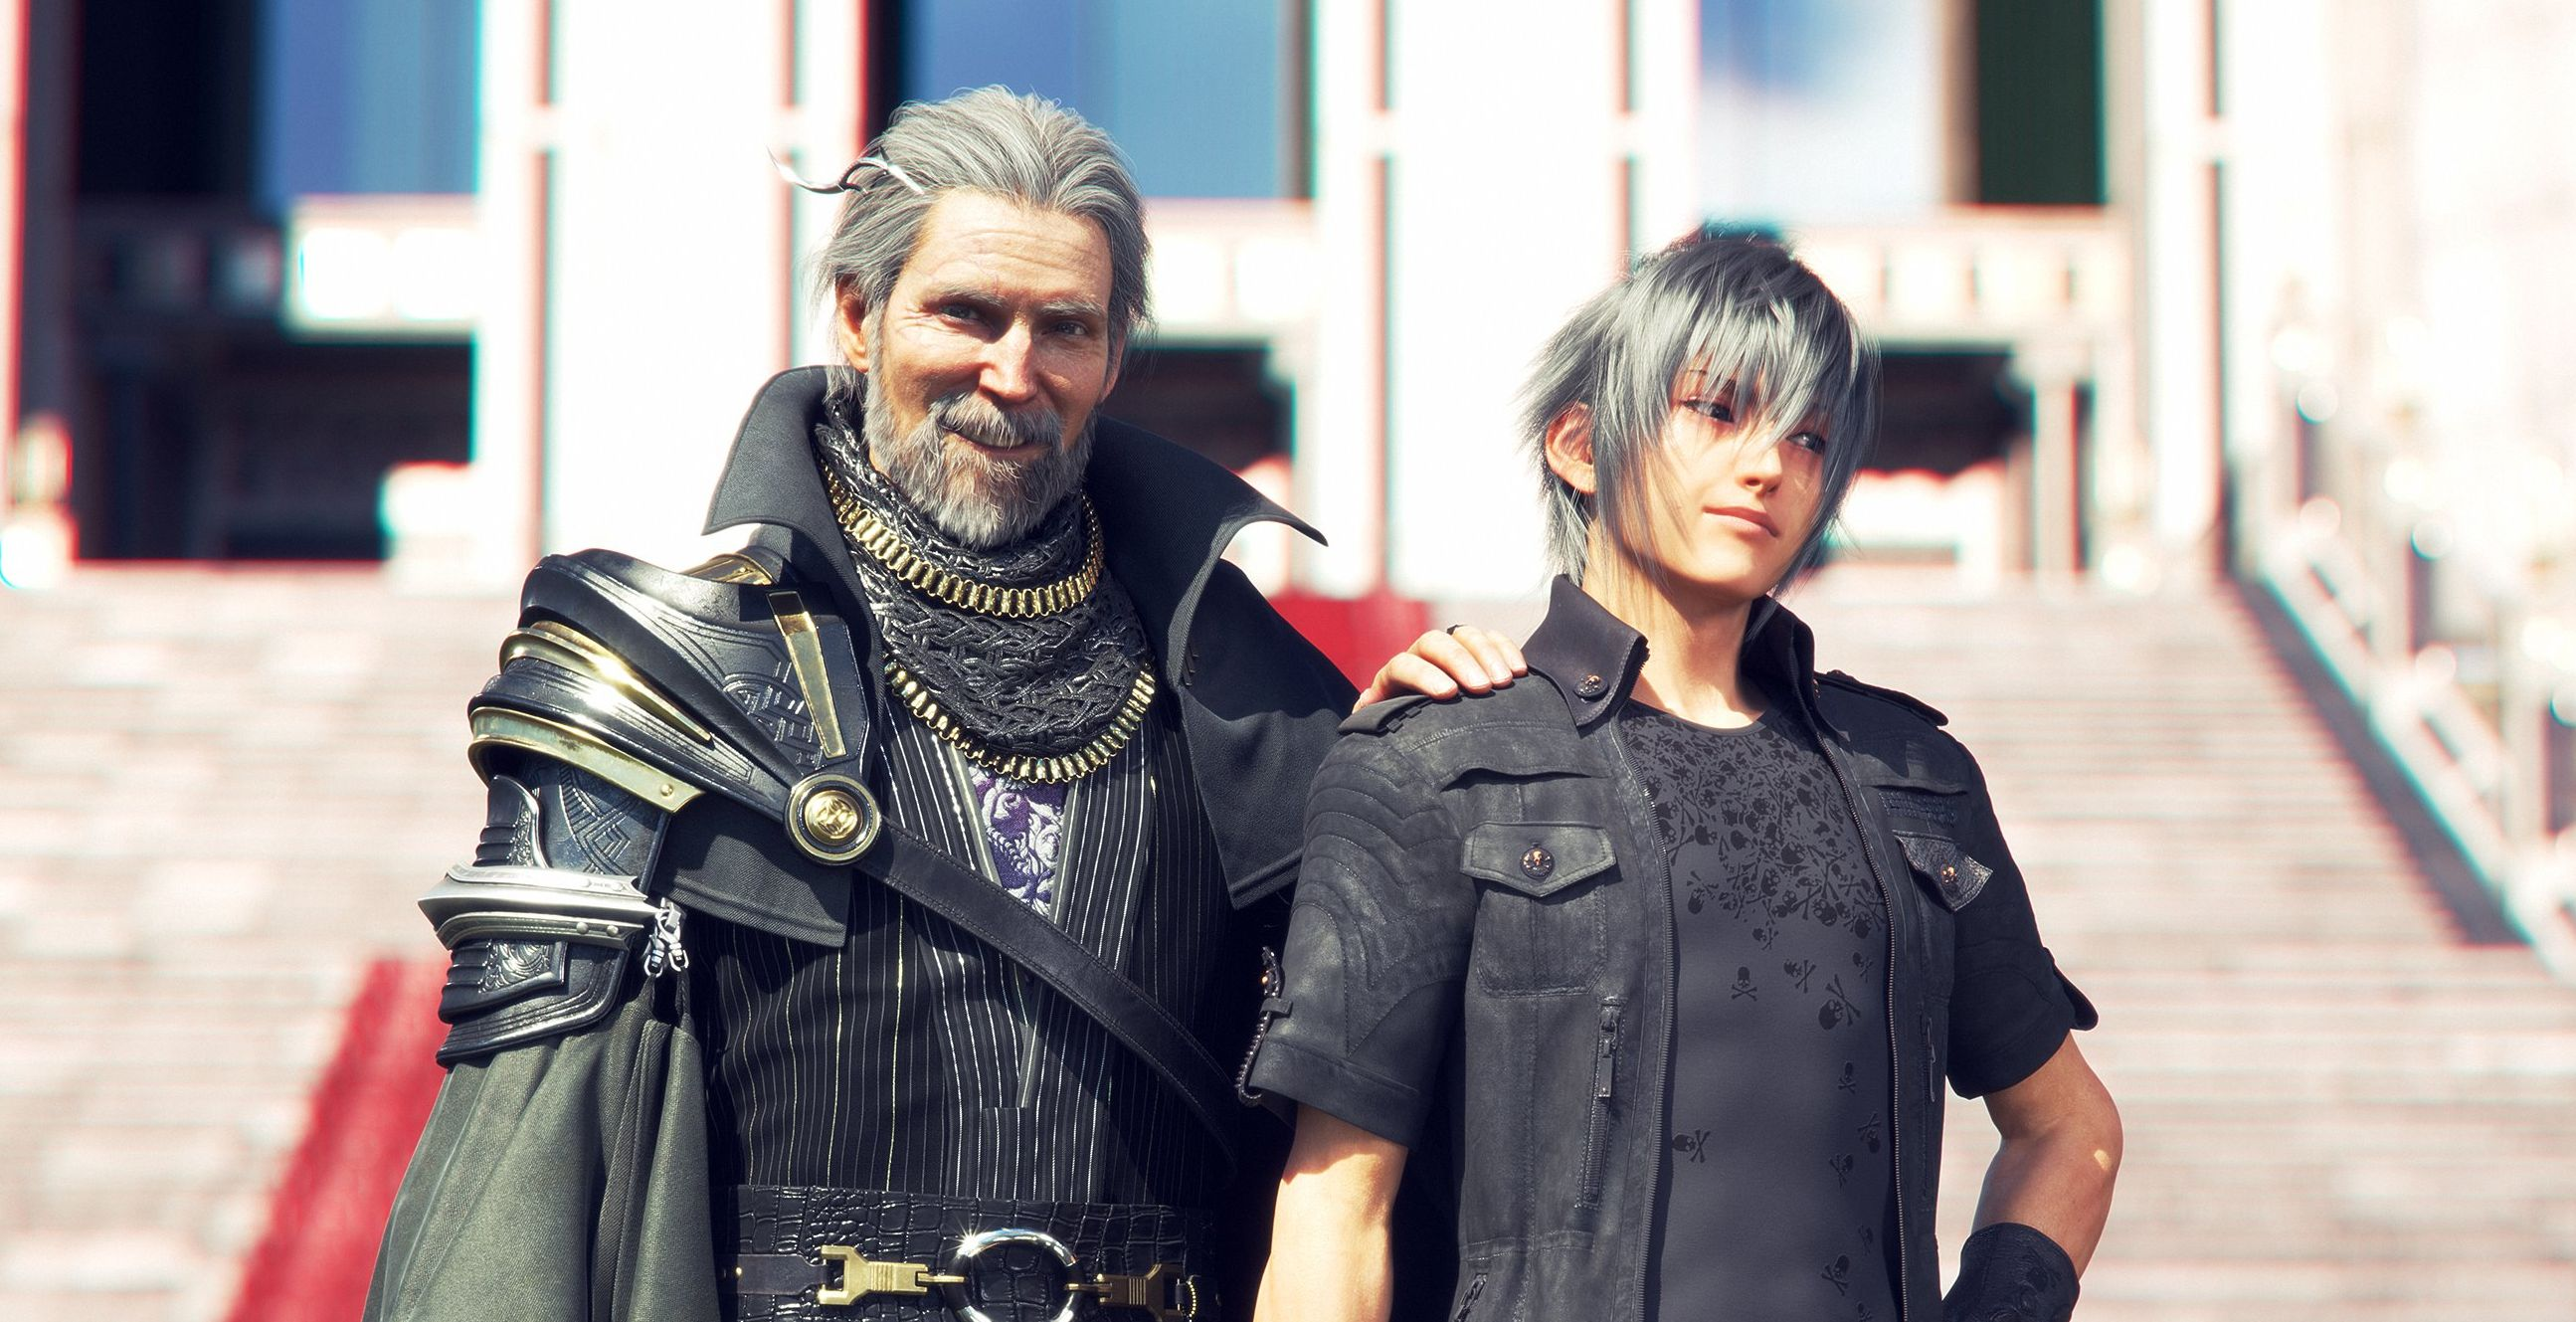 Final Fantasy Xv Gets Adorable Pictures Of Noctis And Regis To